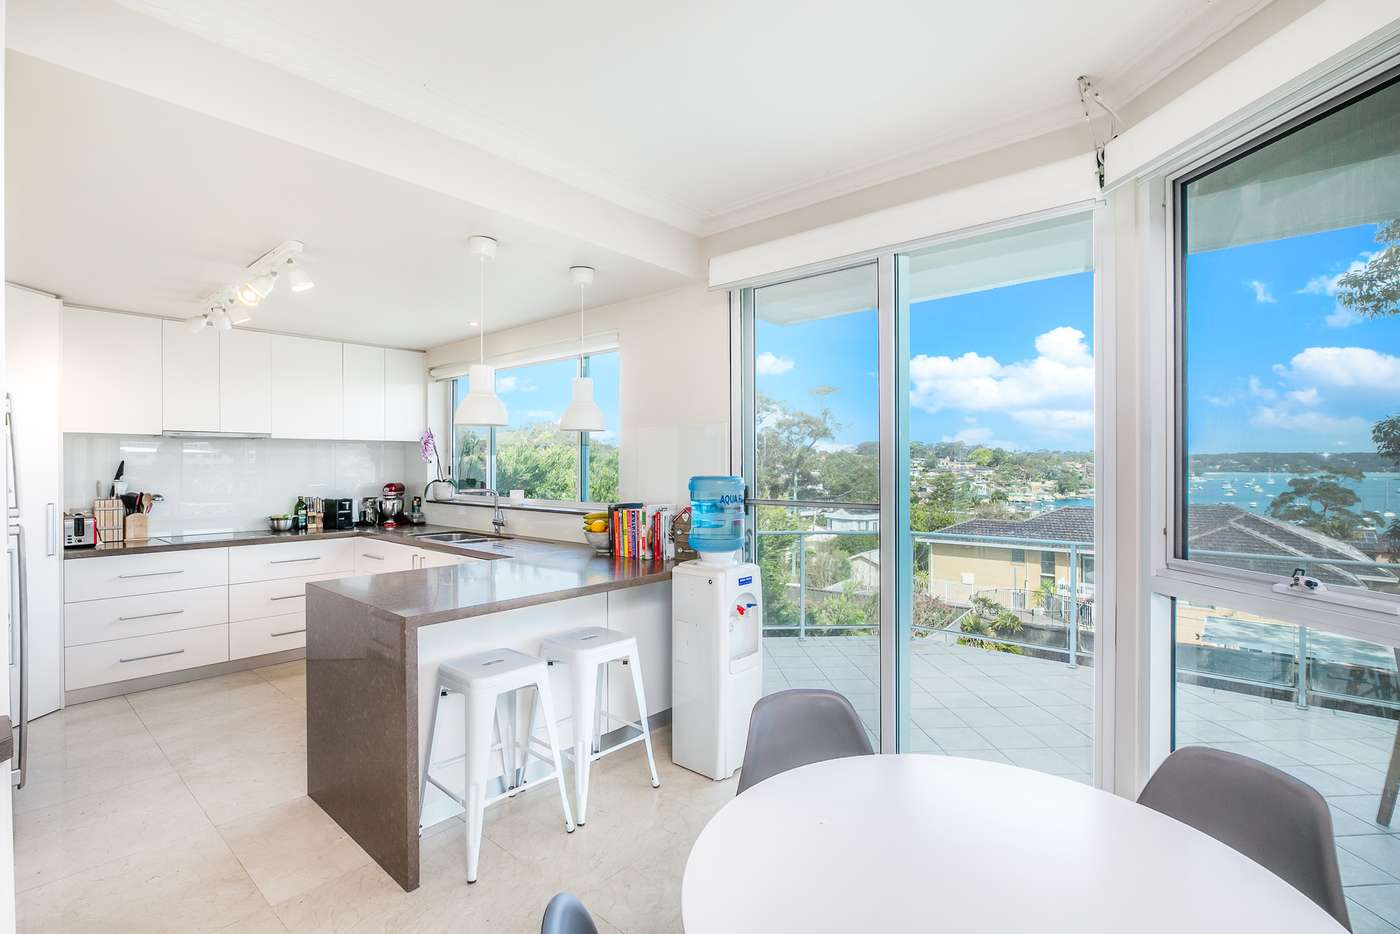 Fifth view of Homely house listing, 26 Dominic Street, Burraneer NSW 2230